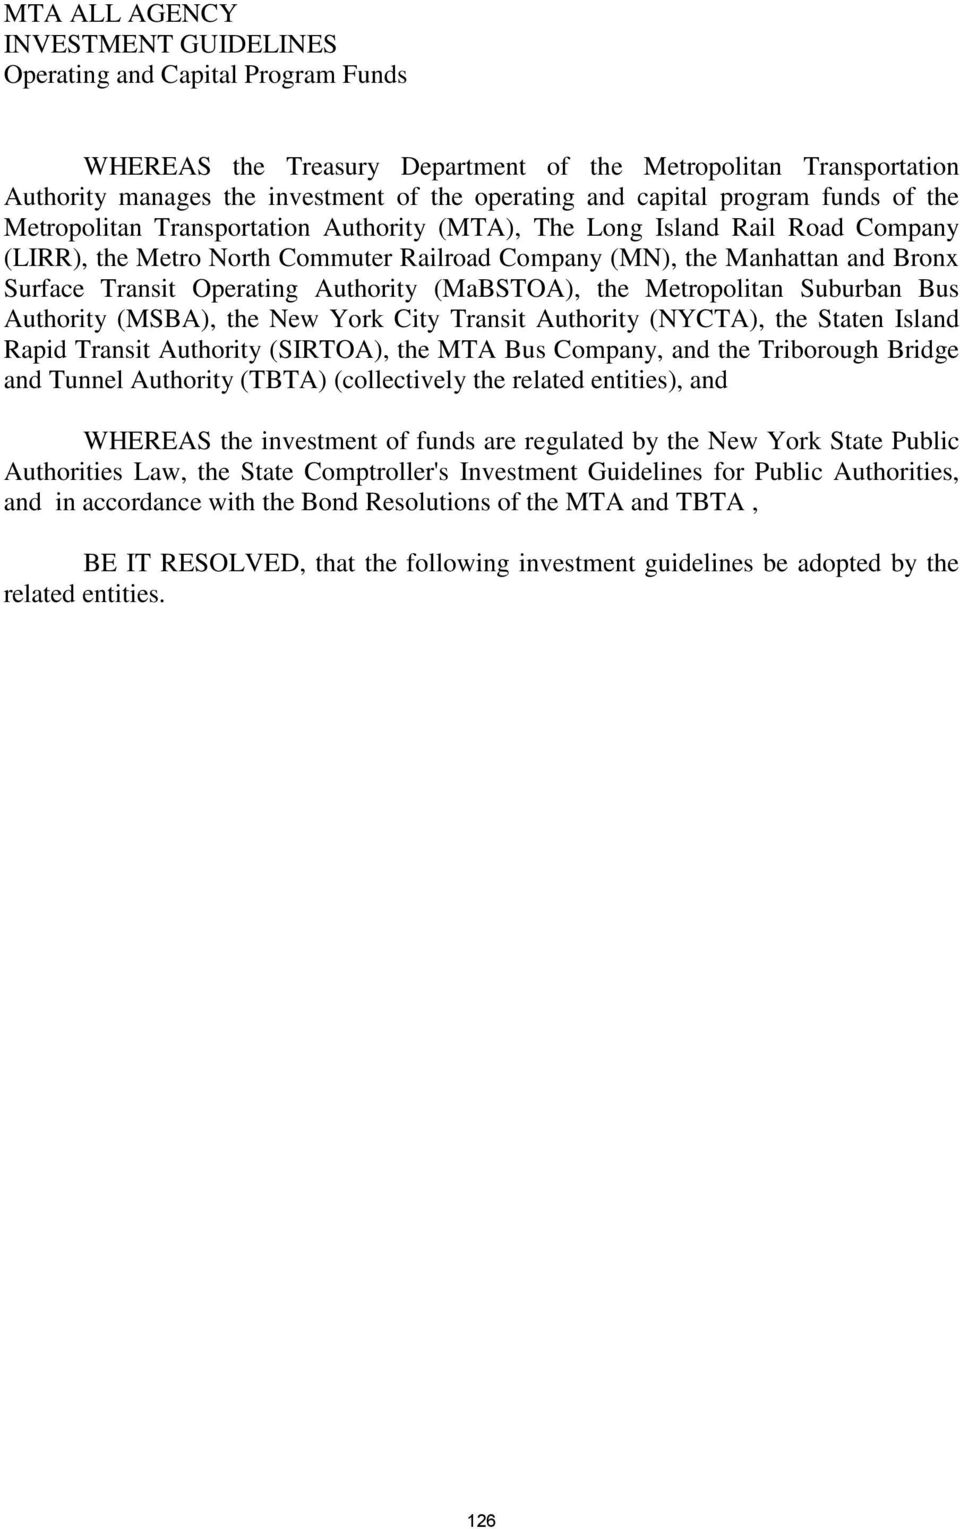 Transit Operating Authority (MaBSTOA), the Metropolitan Suburban Bus Authority (MSBA), the New York City Transit Authority (NYCTA), the Staten Island Rapid Transit Authority (SIRTOA), the MTA Bus